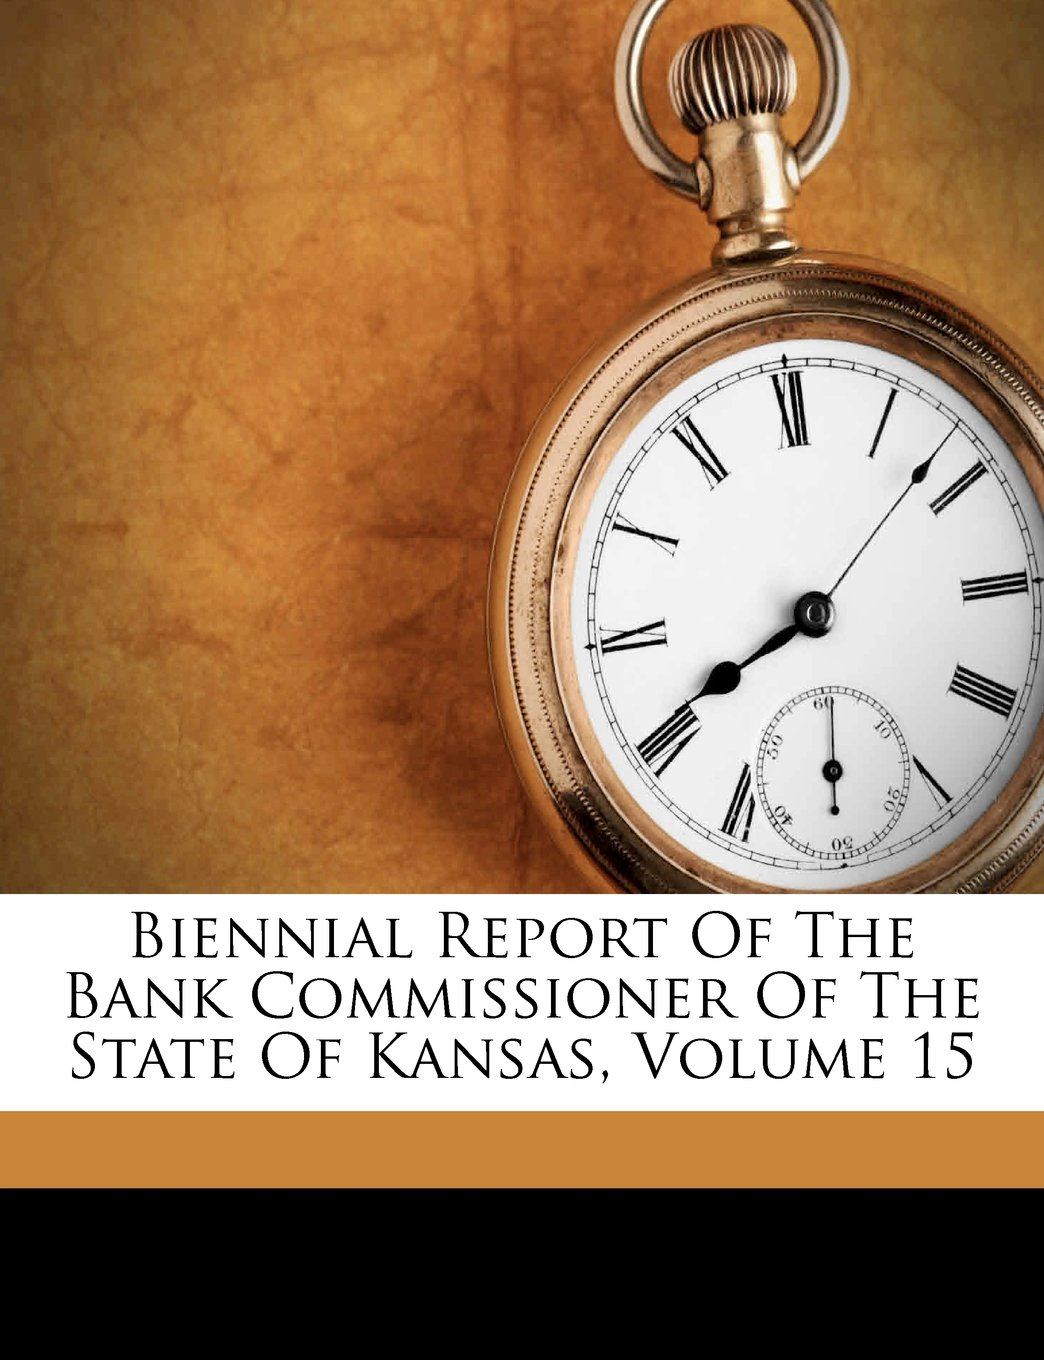 Biennial Report Of The Bank Commissioner Of The State Of Kansas, Volume 15 pdf